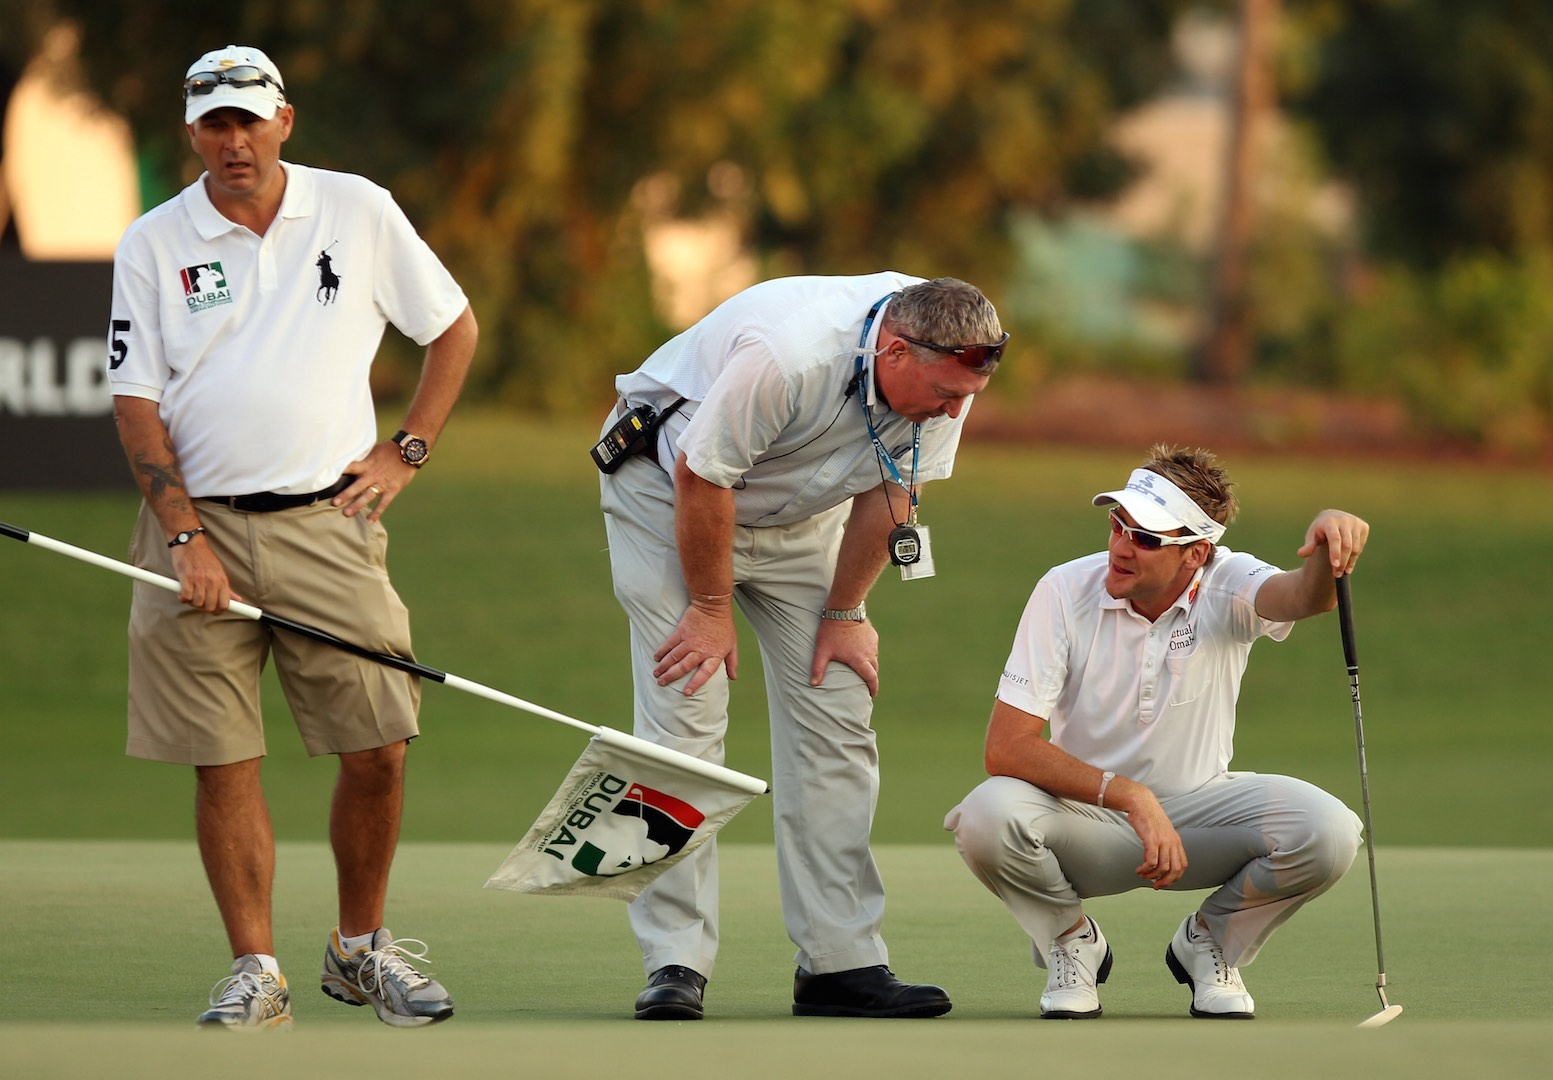 The Top 10 Golfing Confessions Ever